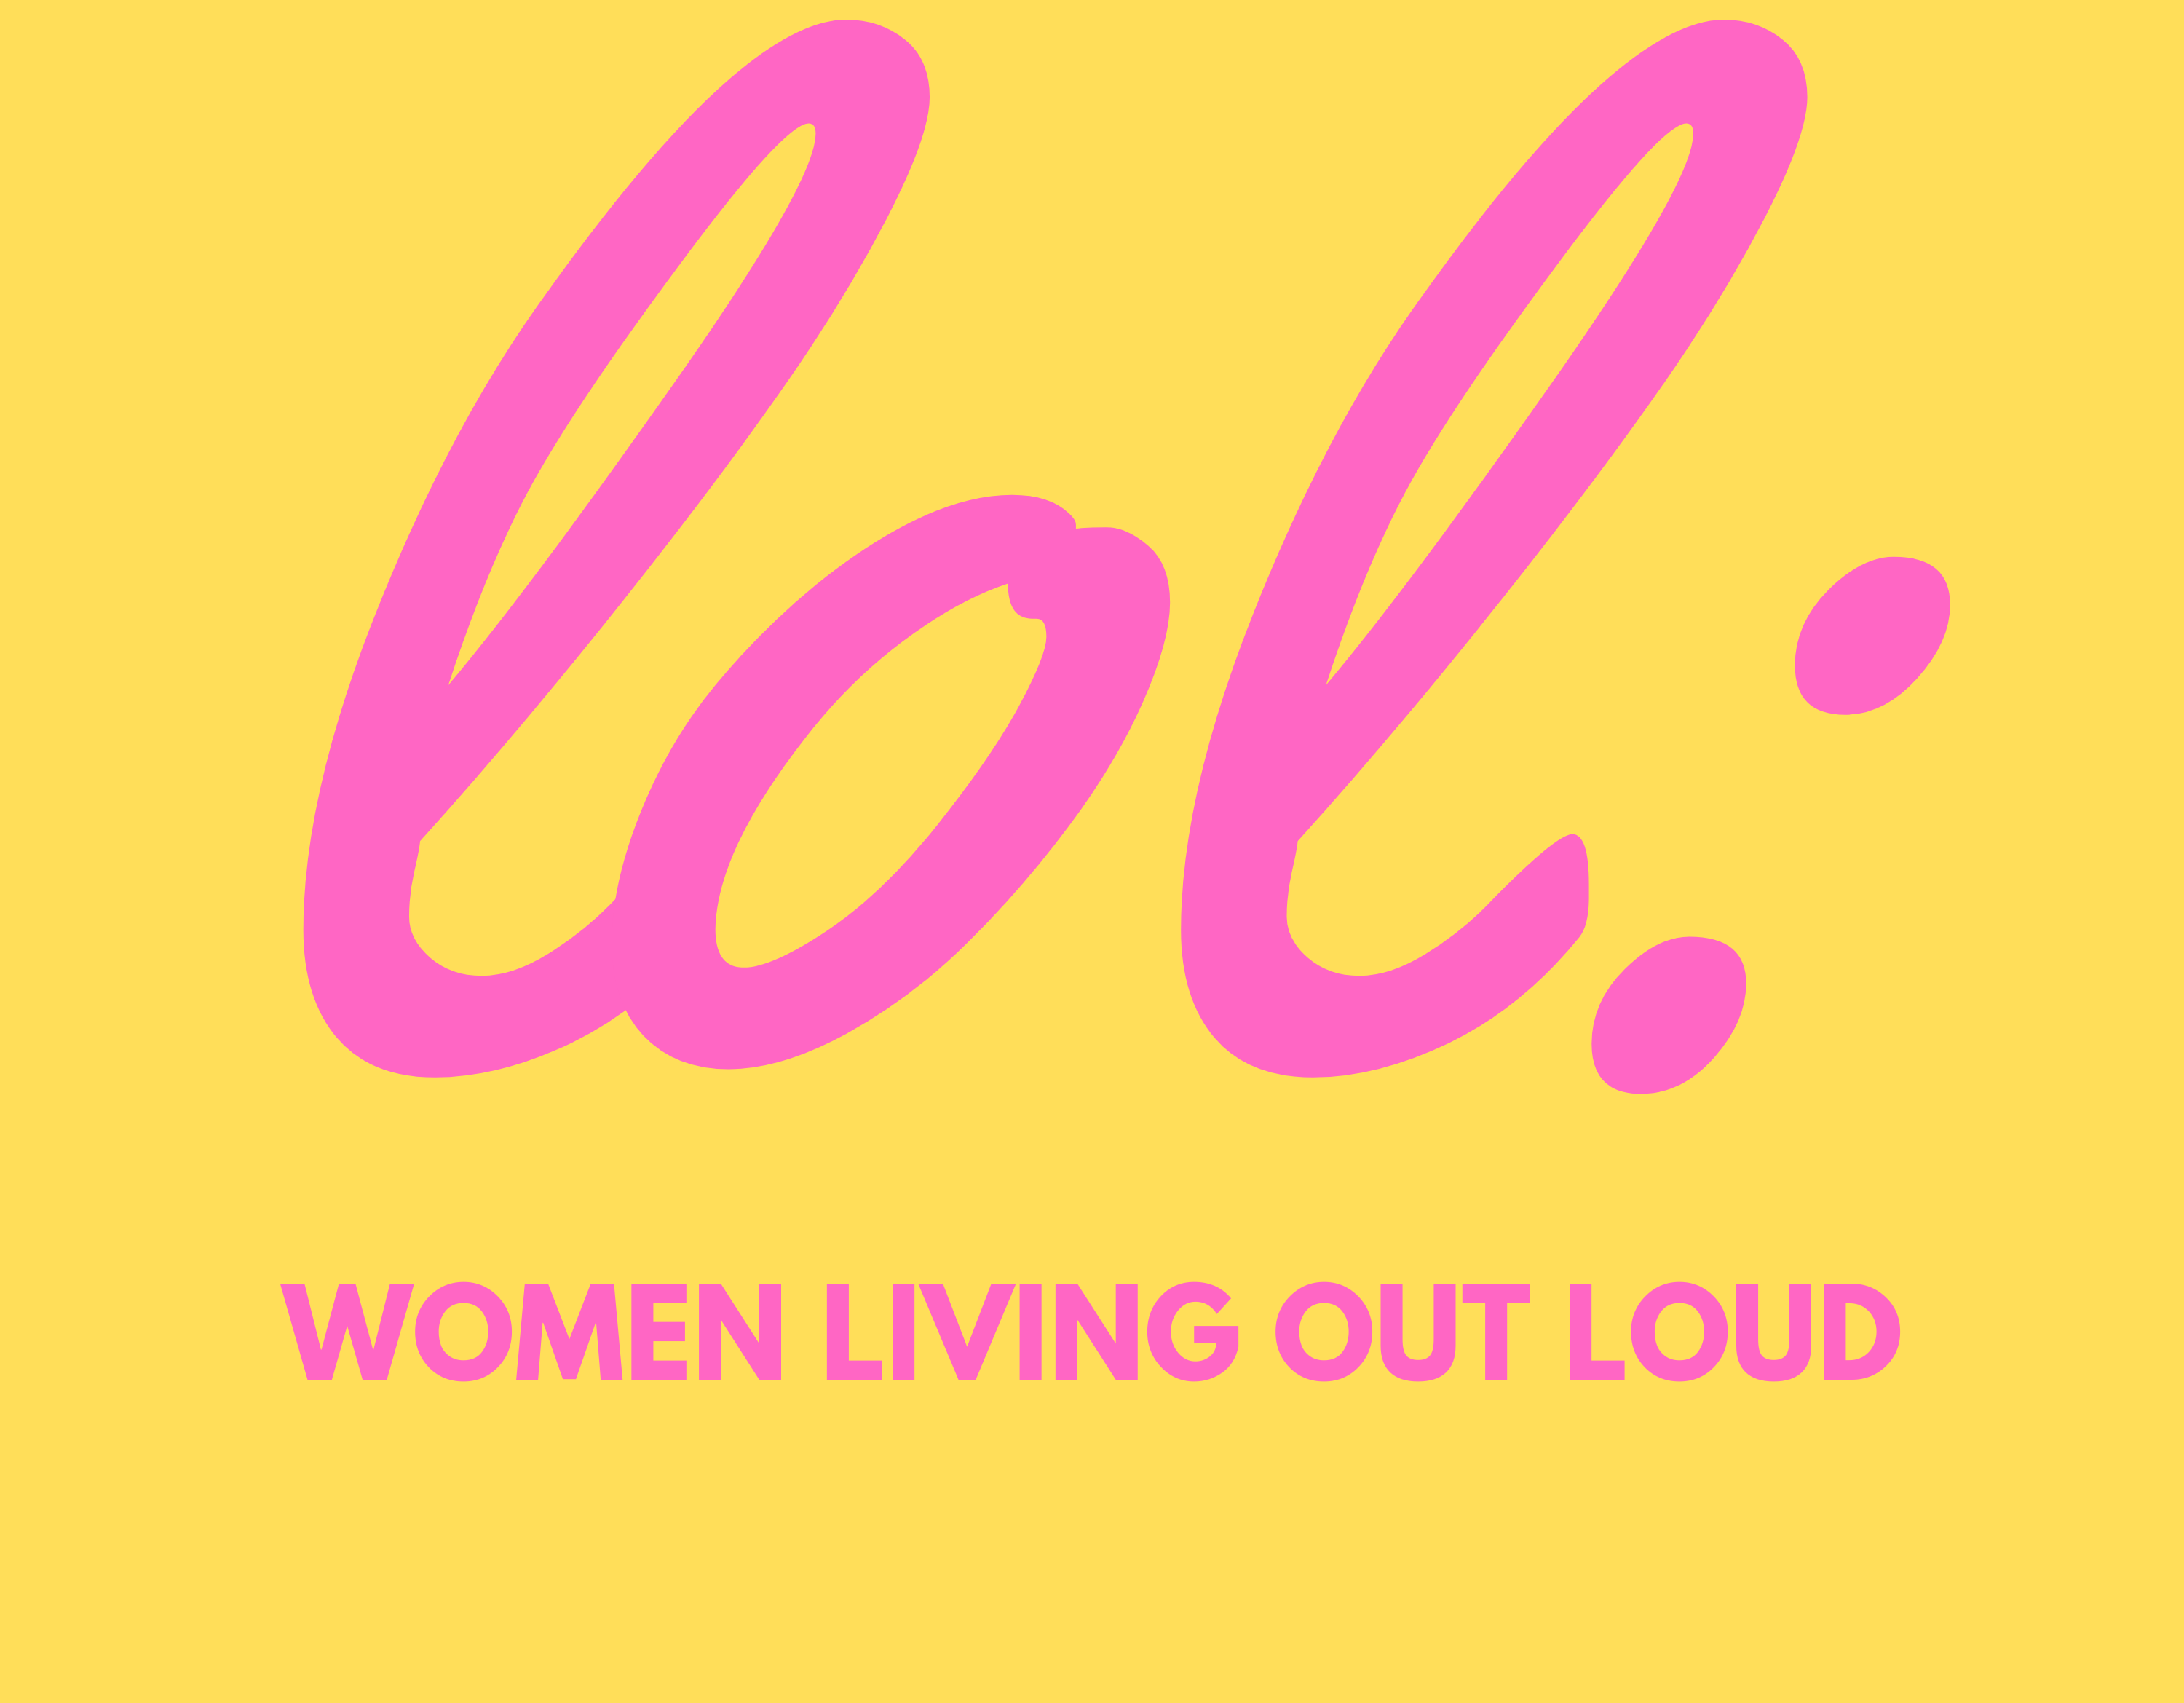 LOL: LIVING OUT LOUD